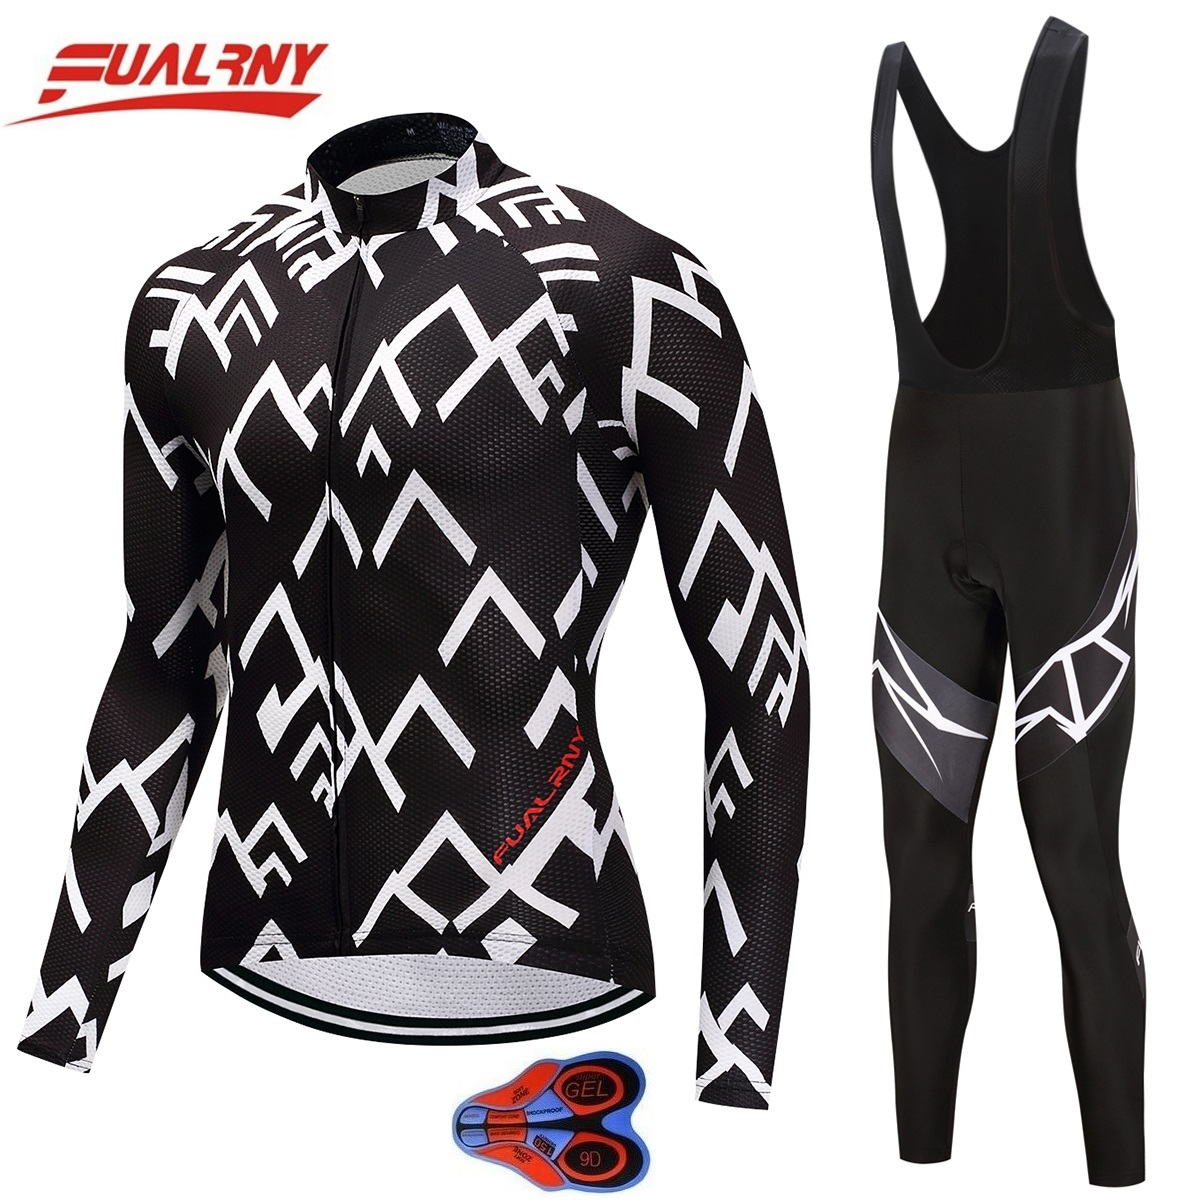 2019 Team FUALRNY Long sleeve Ropa Ciclismo Cycling Jersey sets Mountian Bicycle Clothing/MTB Bike Clothes For Man White stripe2019 Team FUALRNY Long sleeve Ropa Ciclismo Cycling Jersey sets Mountian Bicycle Clothing/MTB Bike Clothes For Man White stripe